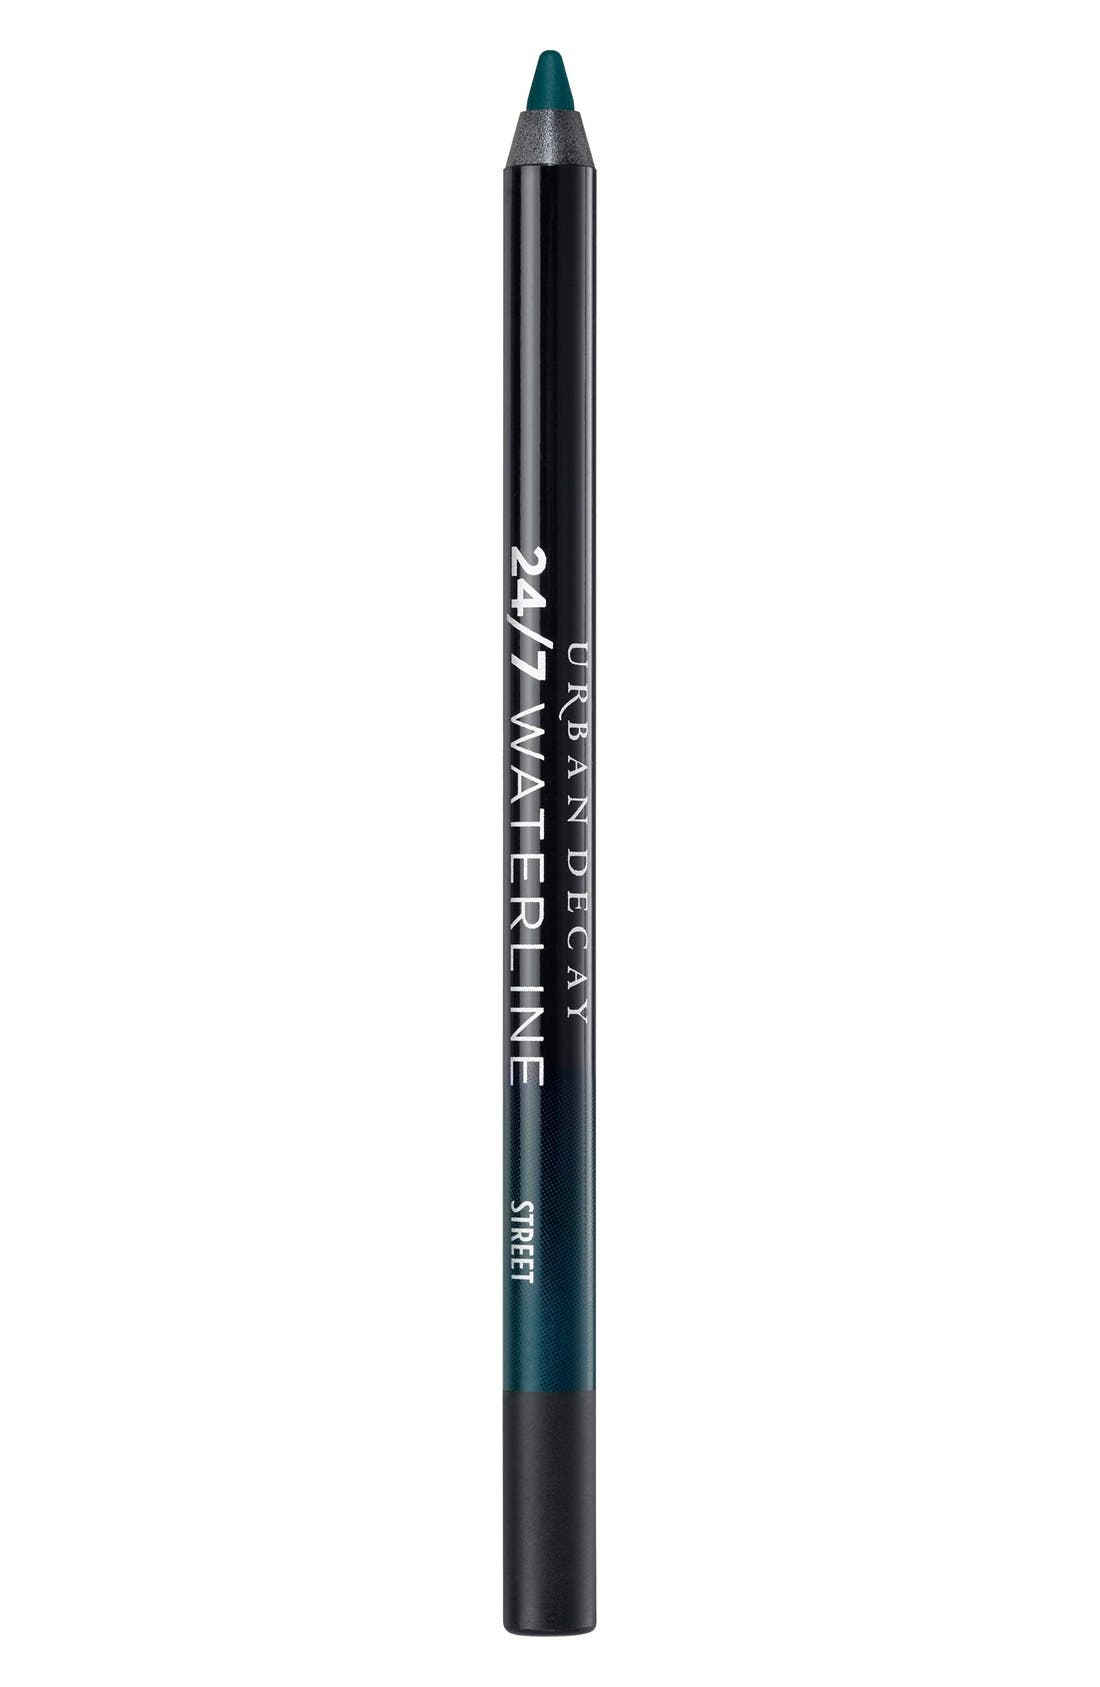 24/7 Waterline Eye Pencil,                         Main,                         color, 300